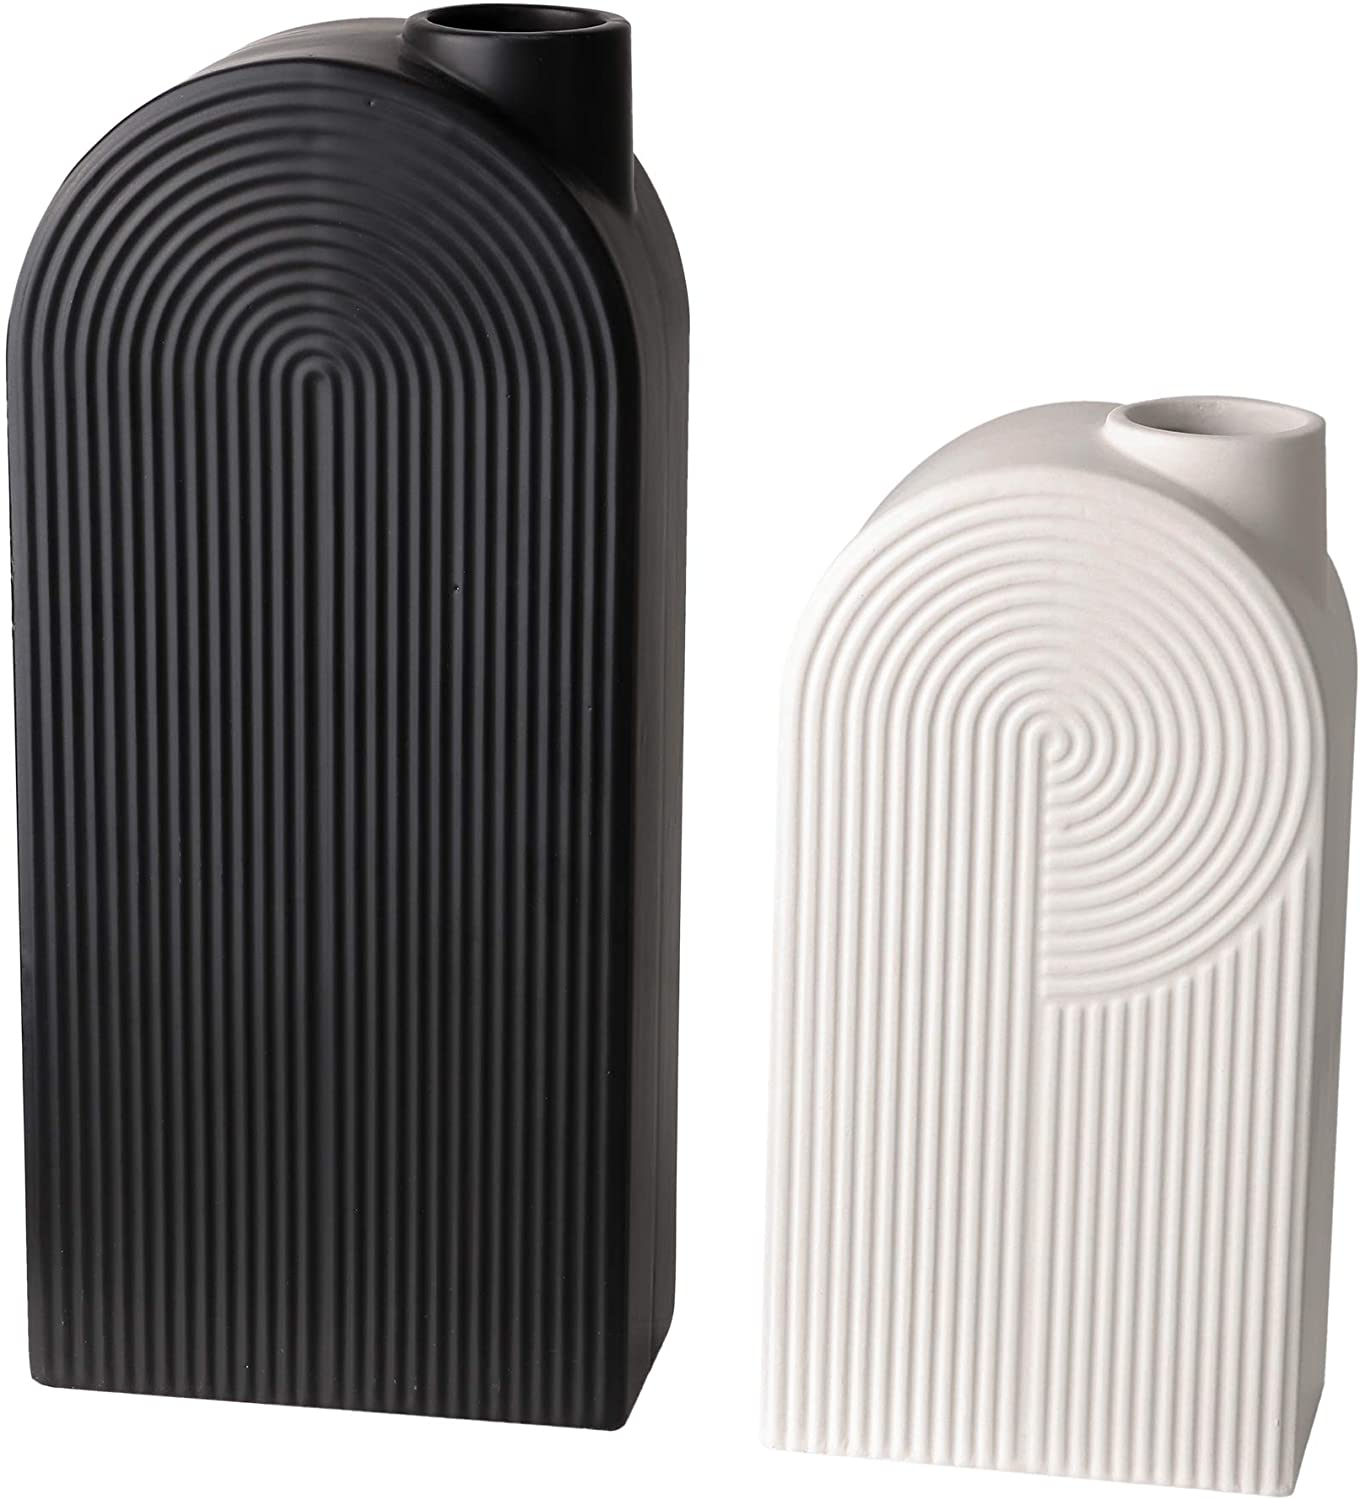 TERESA'S COLLECTIONS Ceramic Modern Vase, Black and White Geometric Decorative Vases for Home Decor, Mantel, Table, Living Room, Office Decoration-Set of 2